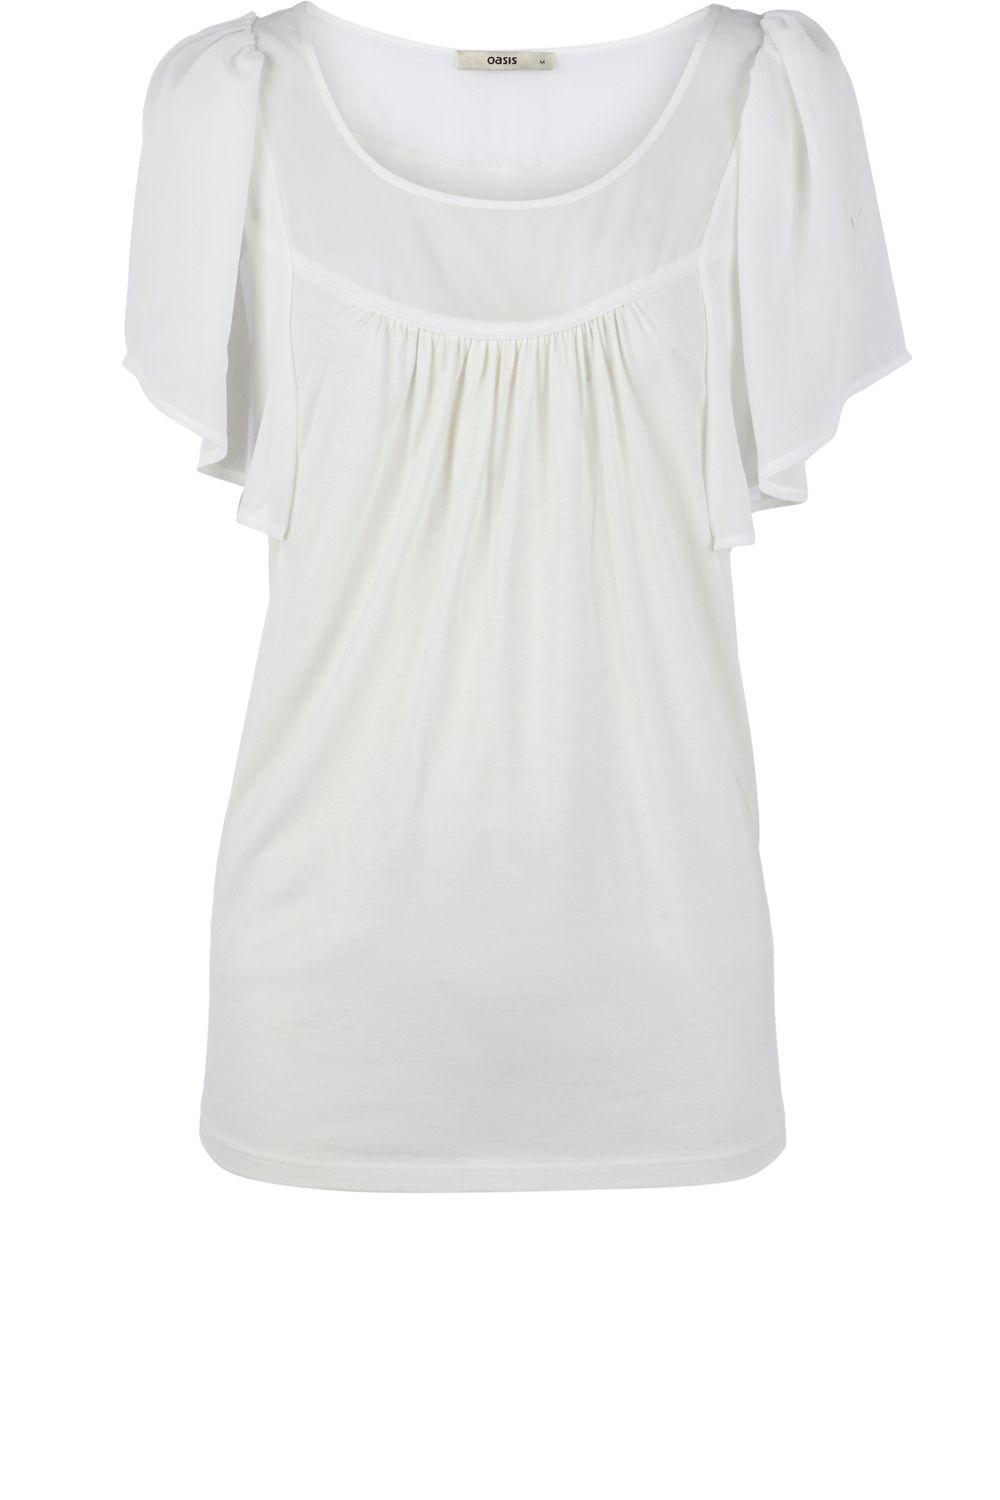 Oasis Cape sleeve blouse - Natural product image